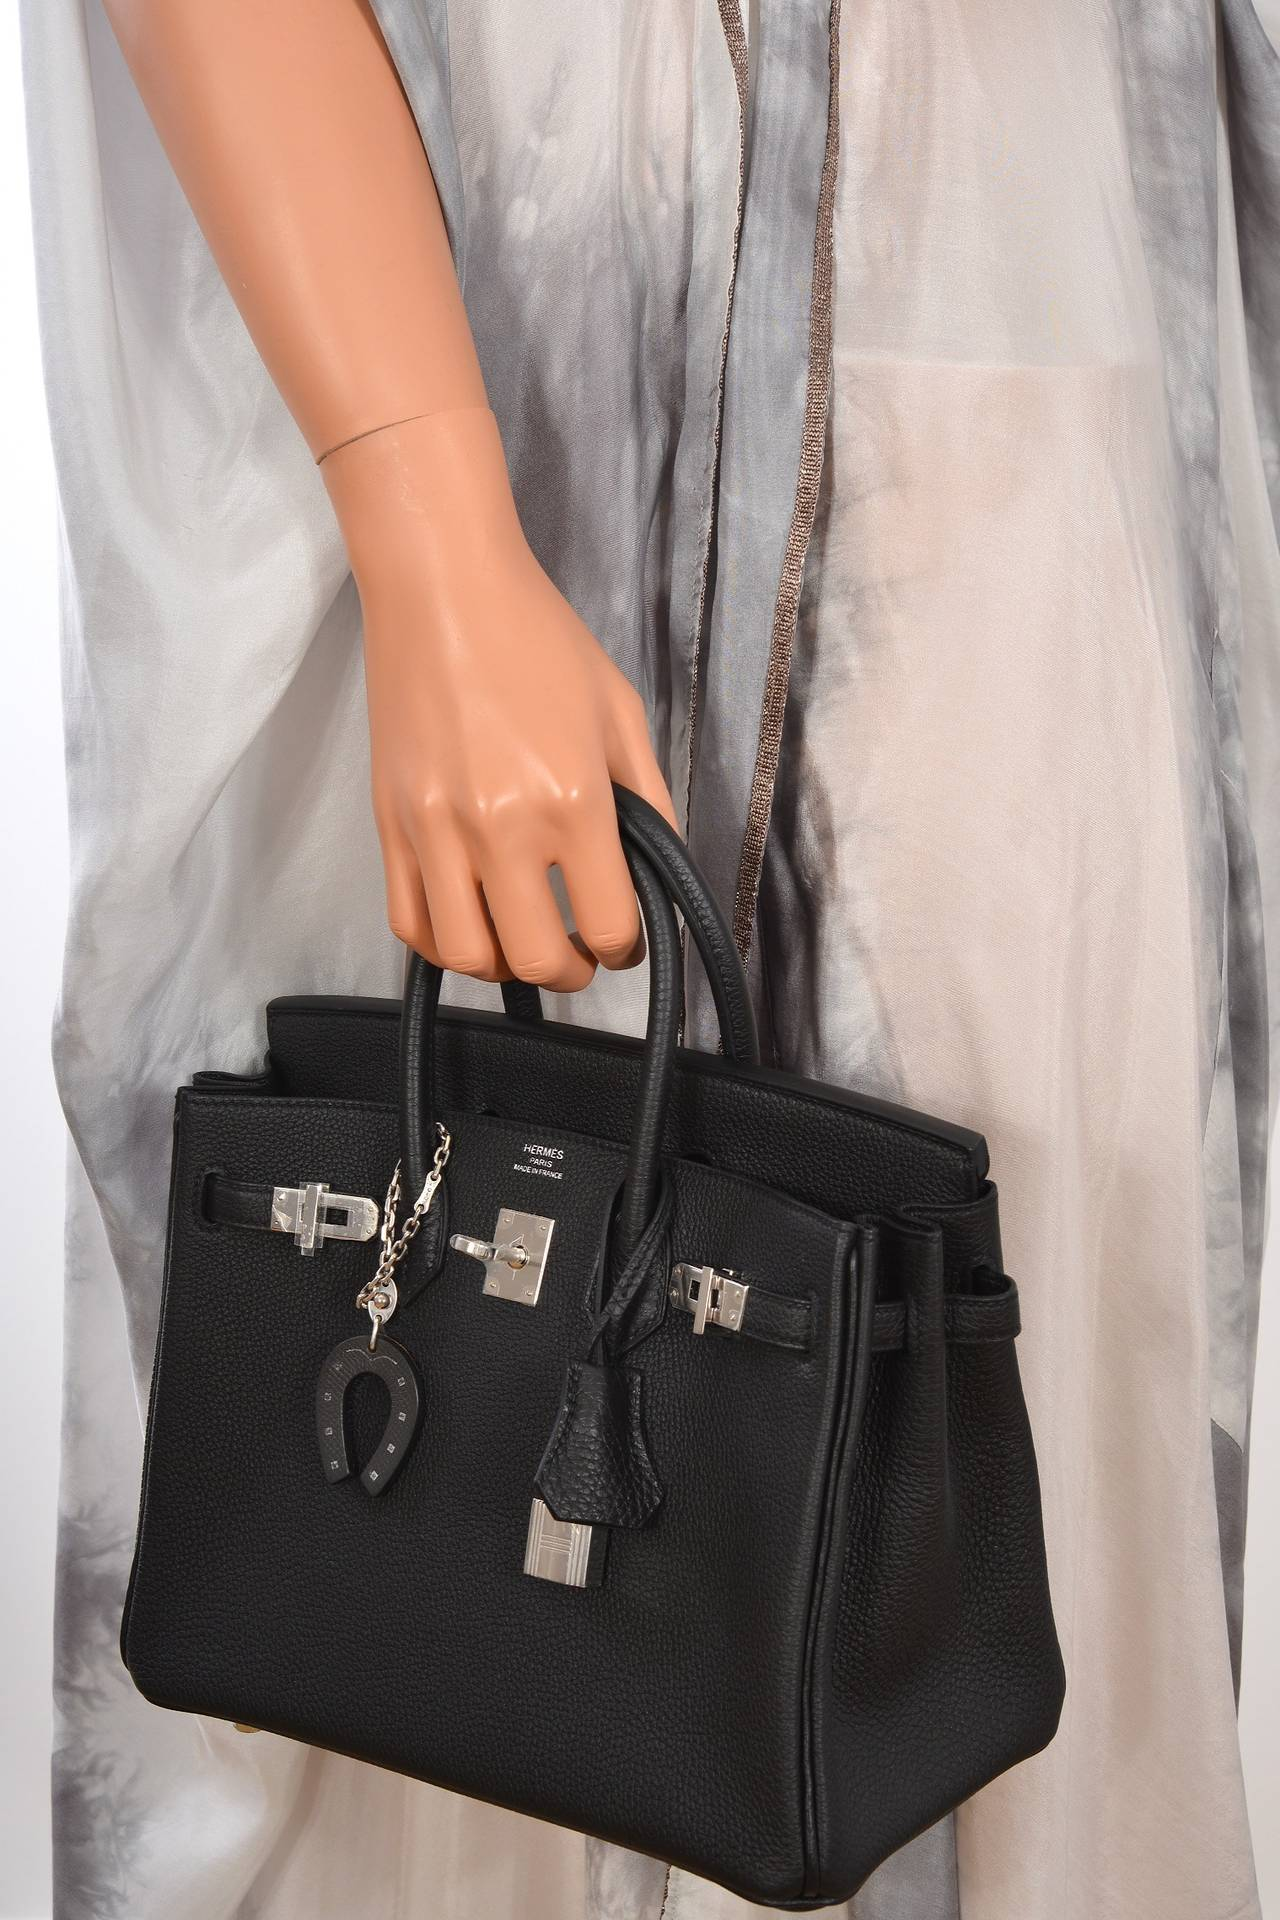 hermes birkin bag 30 black ostrich leather silver hardware